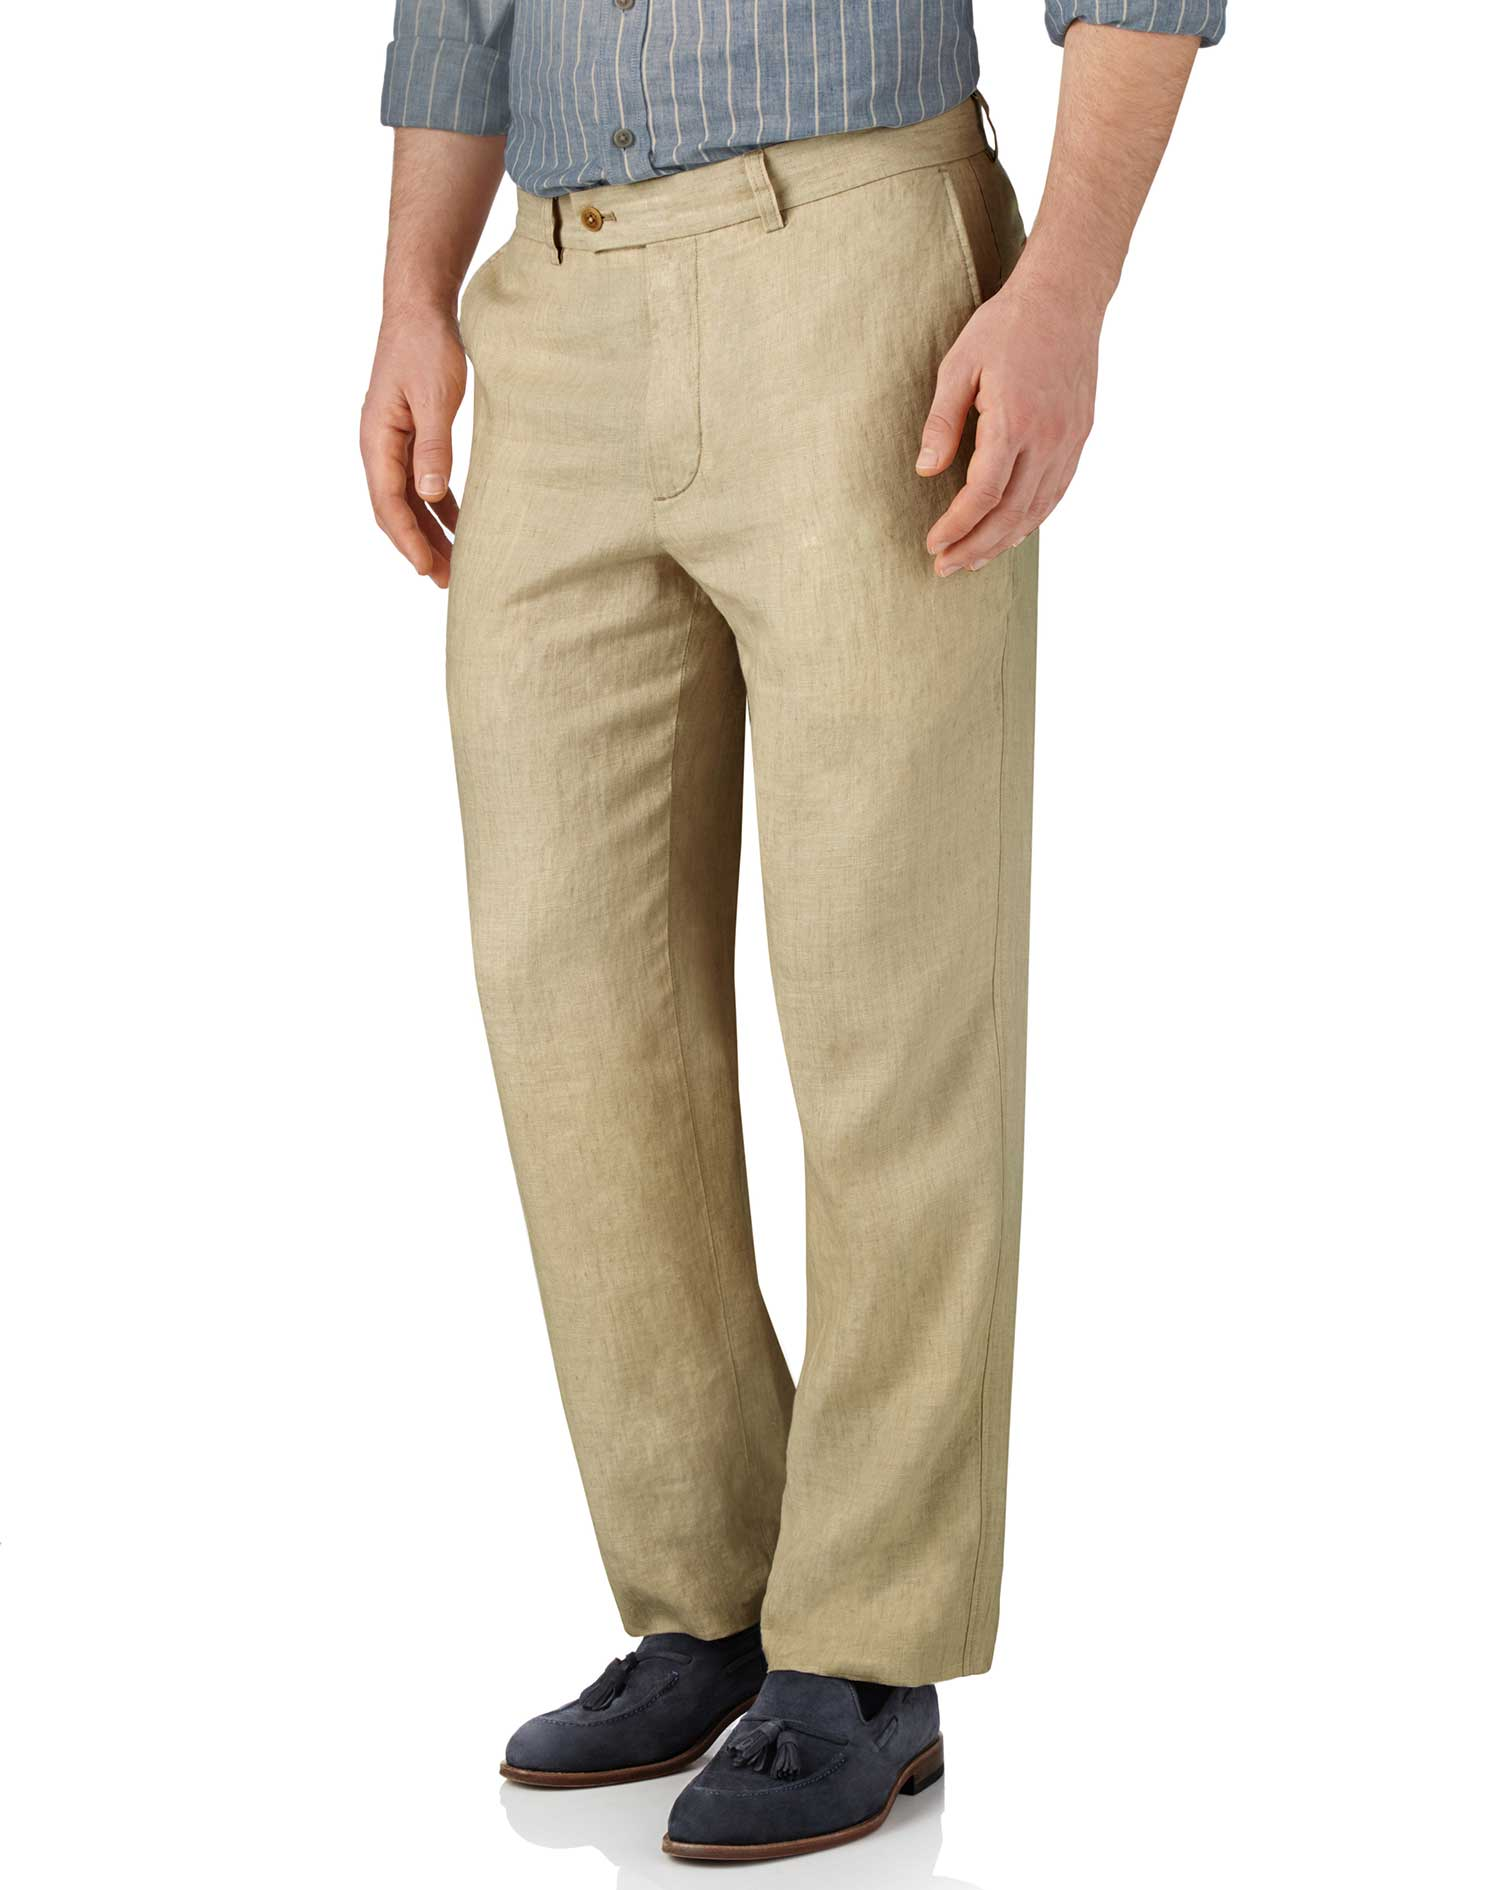 Stone Classic Fit Linen Trousers Size W40 L34 by Charles Tyrwhitt